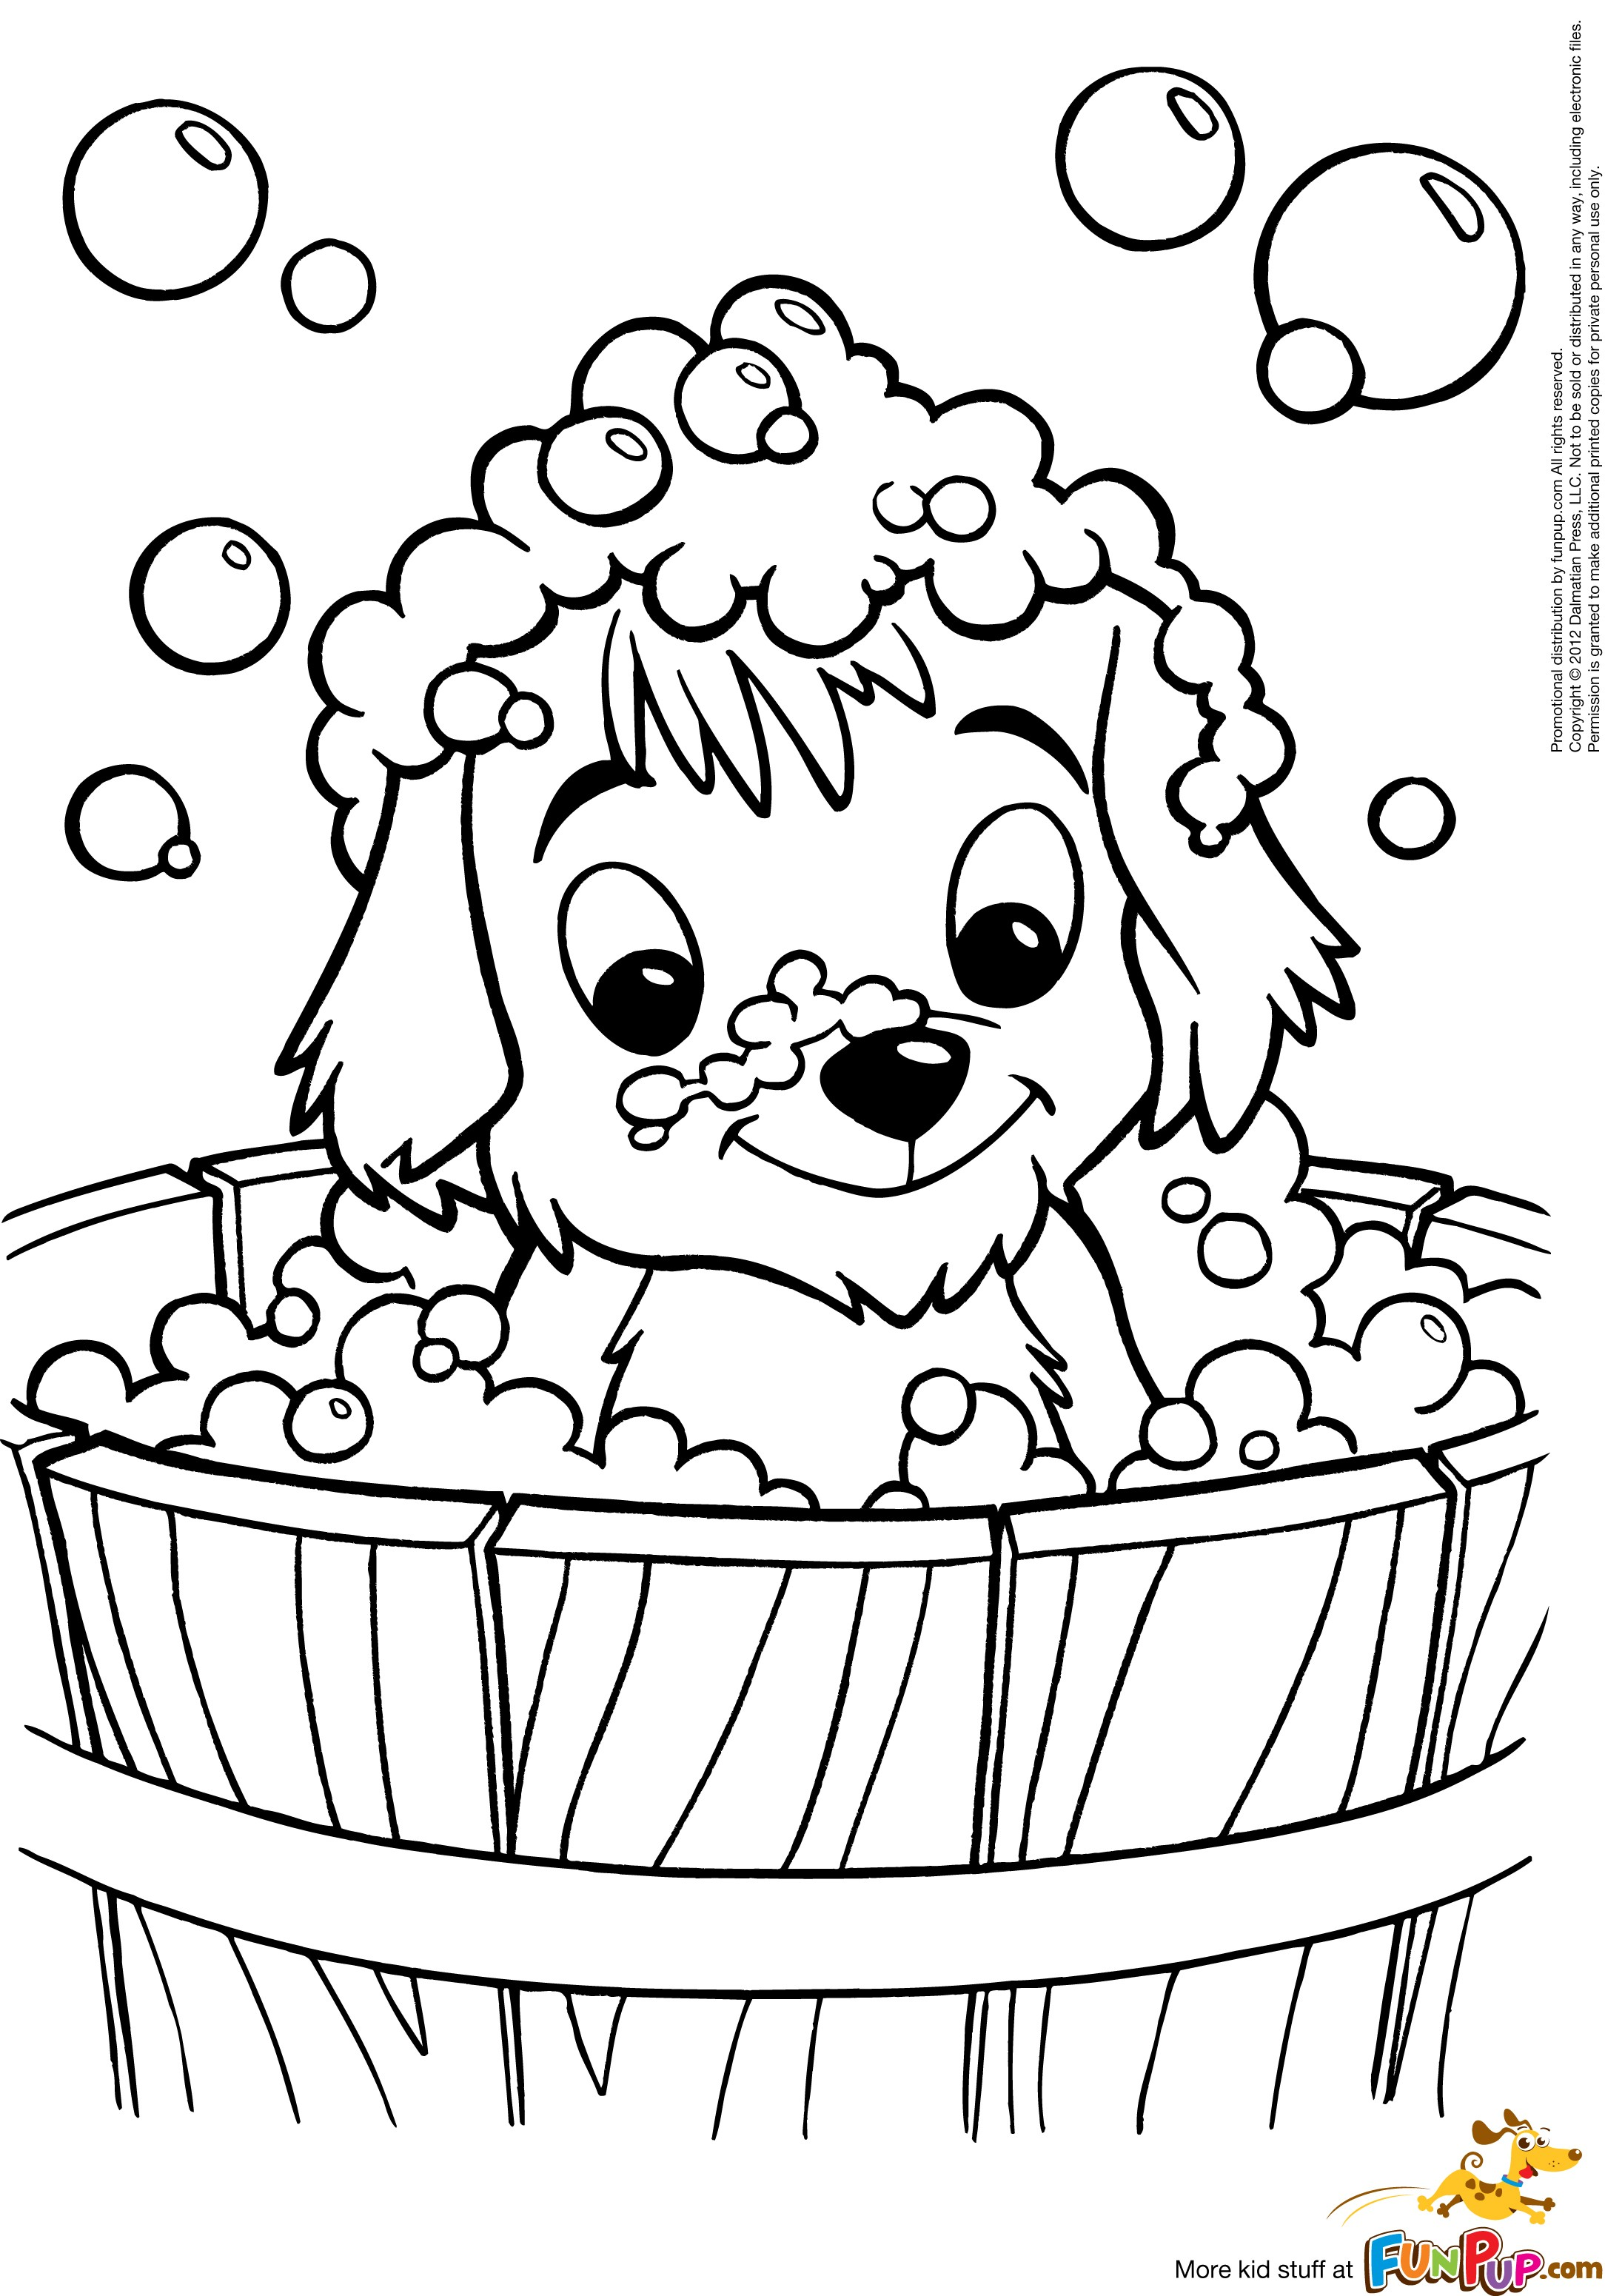 kawaii dog coloring pages 50 free cute puppy coloring pages updated october 2020 pages coloring kawaii dog